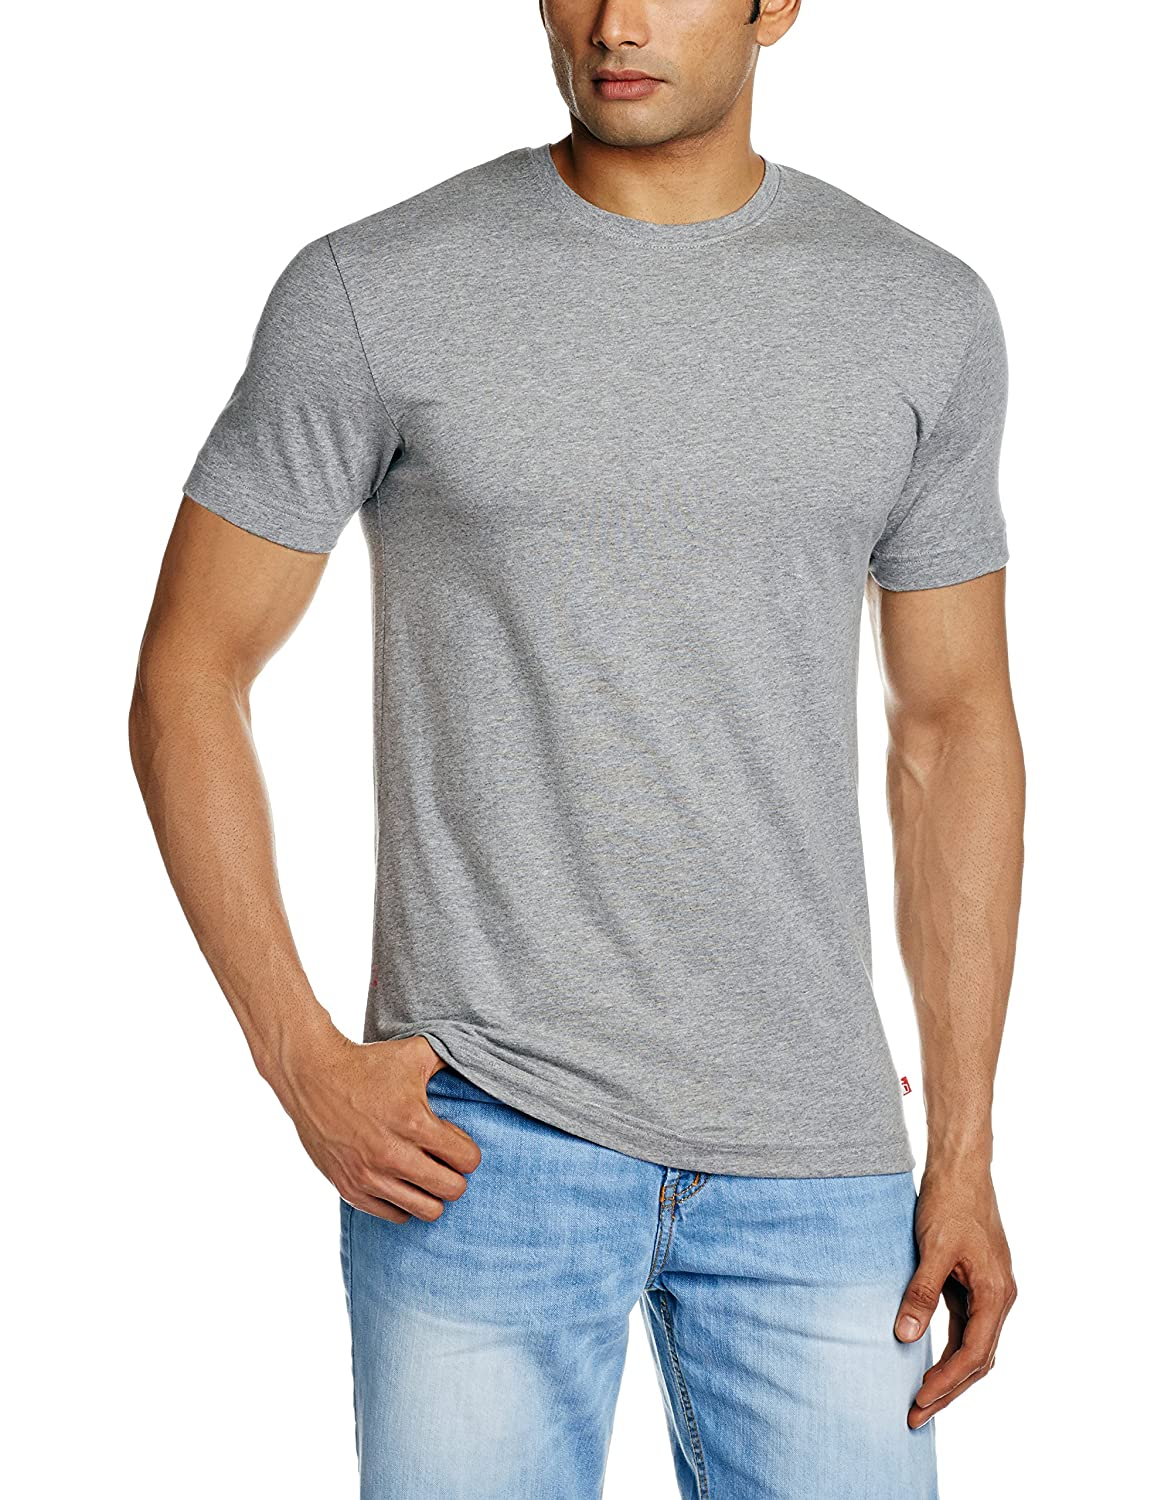 shirt shirts most neck mens men s product t o comforter black plain comfortable detail